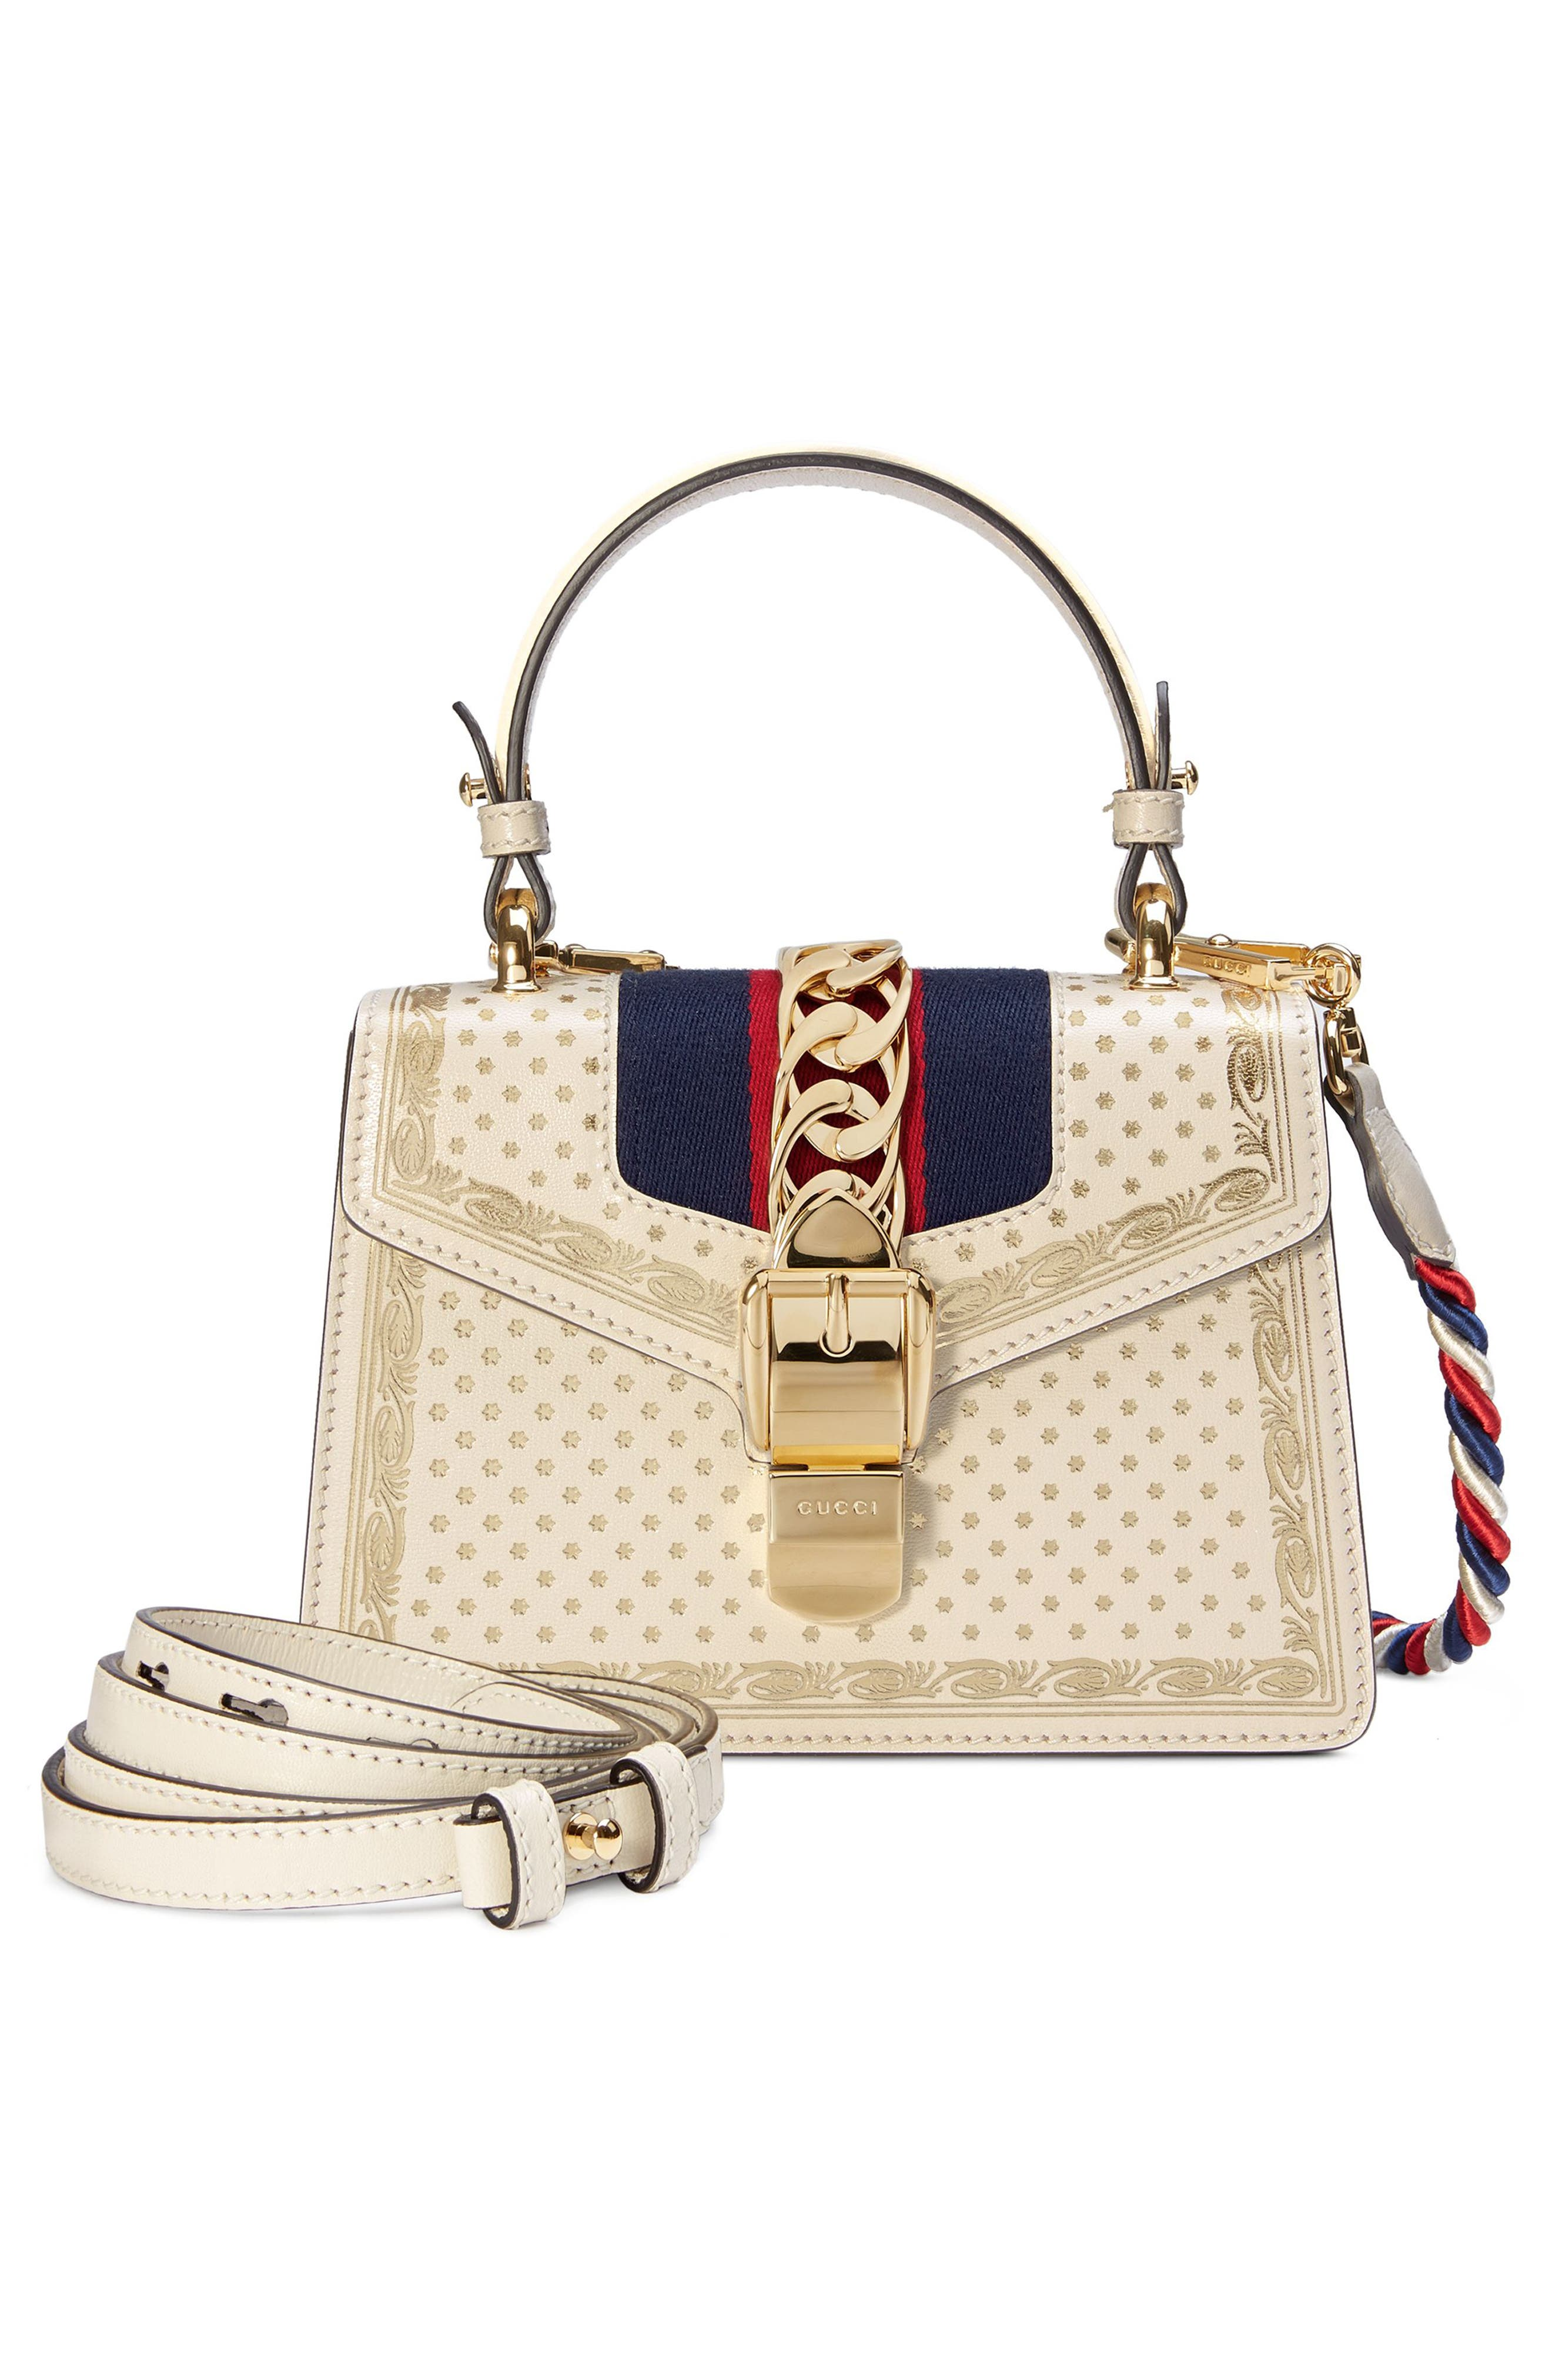 Mini Sylvie Moon & Stars Leather Shoulder Bag,                             Alternate thumbnail 5, color,                             Mystic White/ Oro/ Blue Red